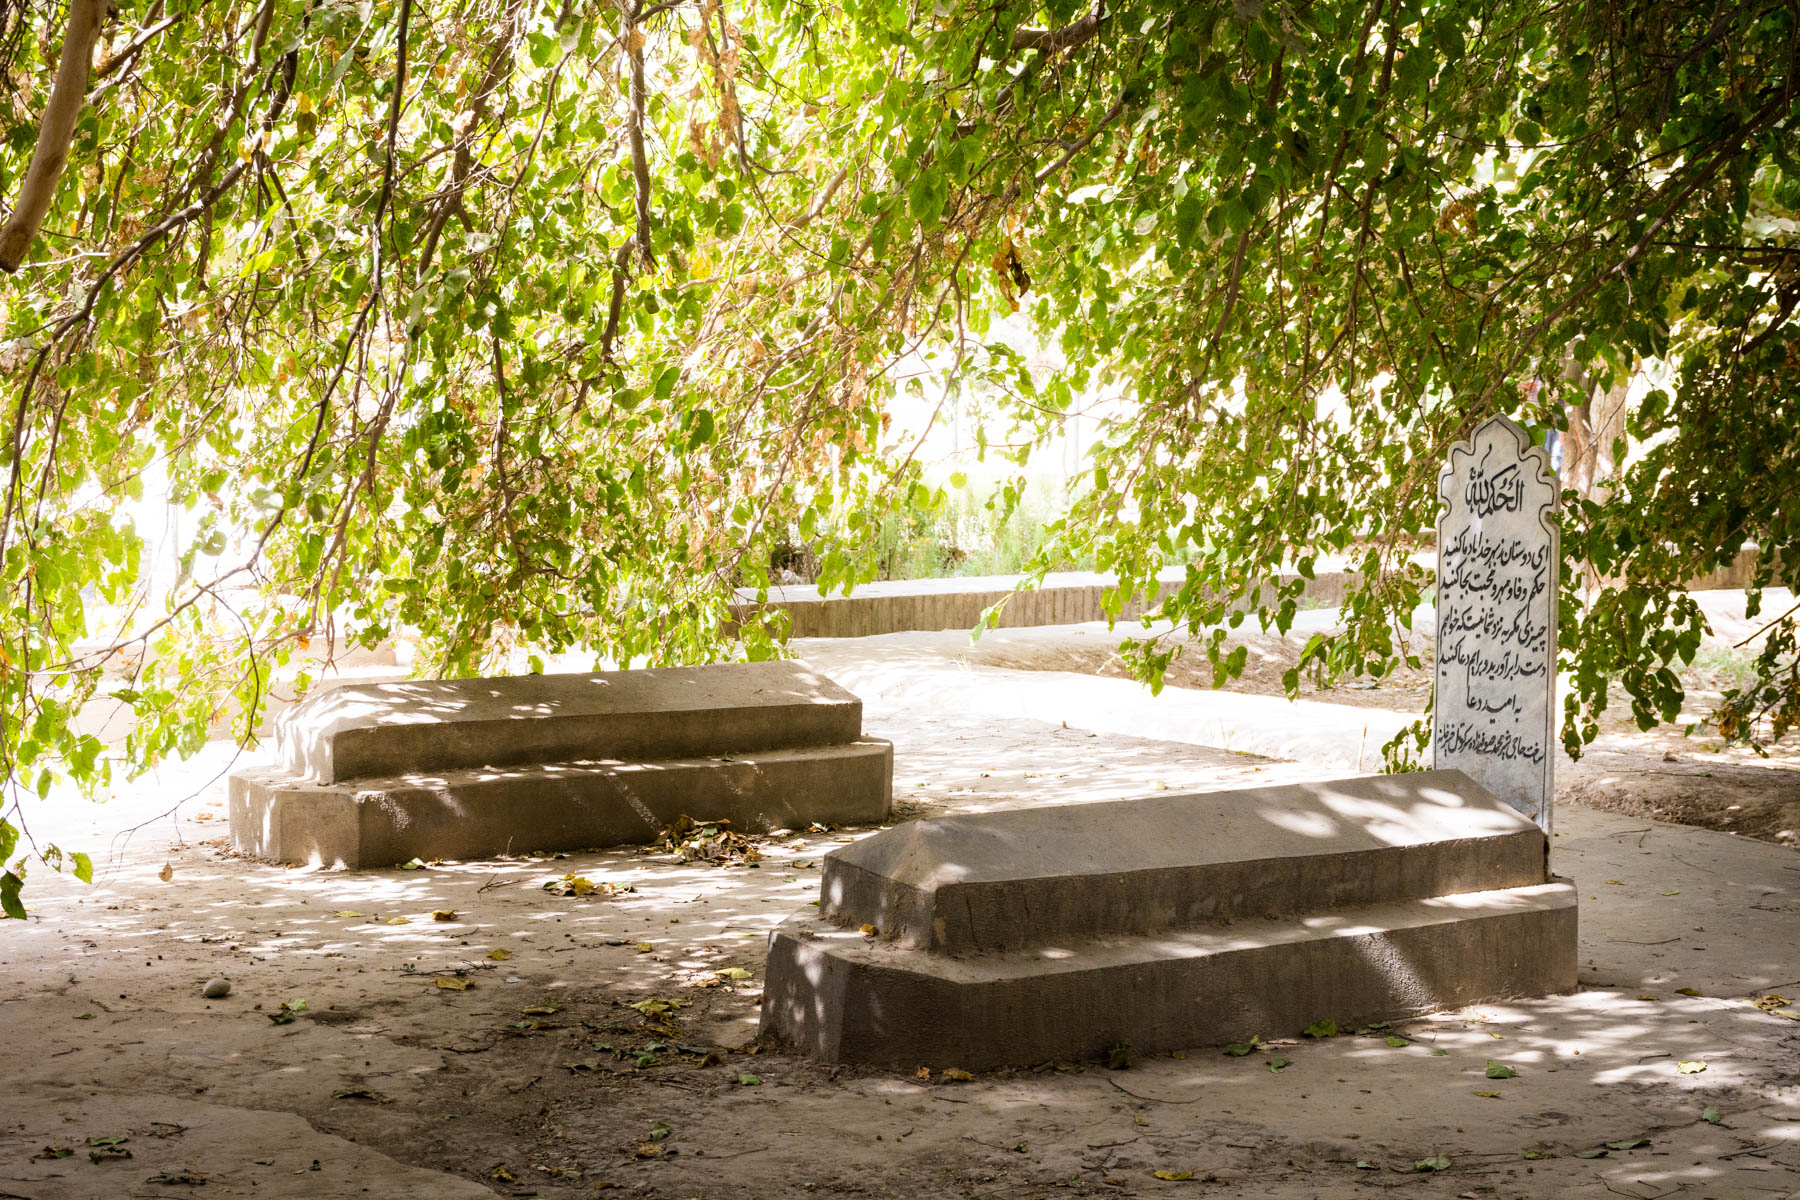 Photos of Old Balkh, Afghanistan - Sunlight on tombstones outside of the Masjid Sabz (Green mosque) in Balkh - Lost With Purpose